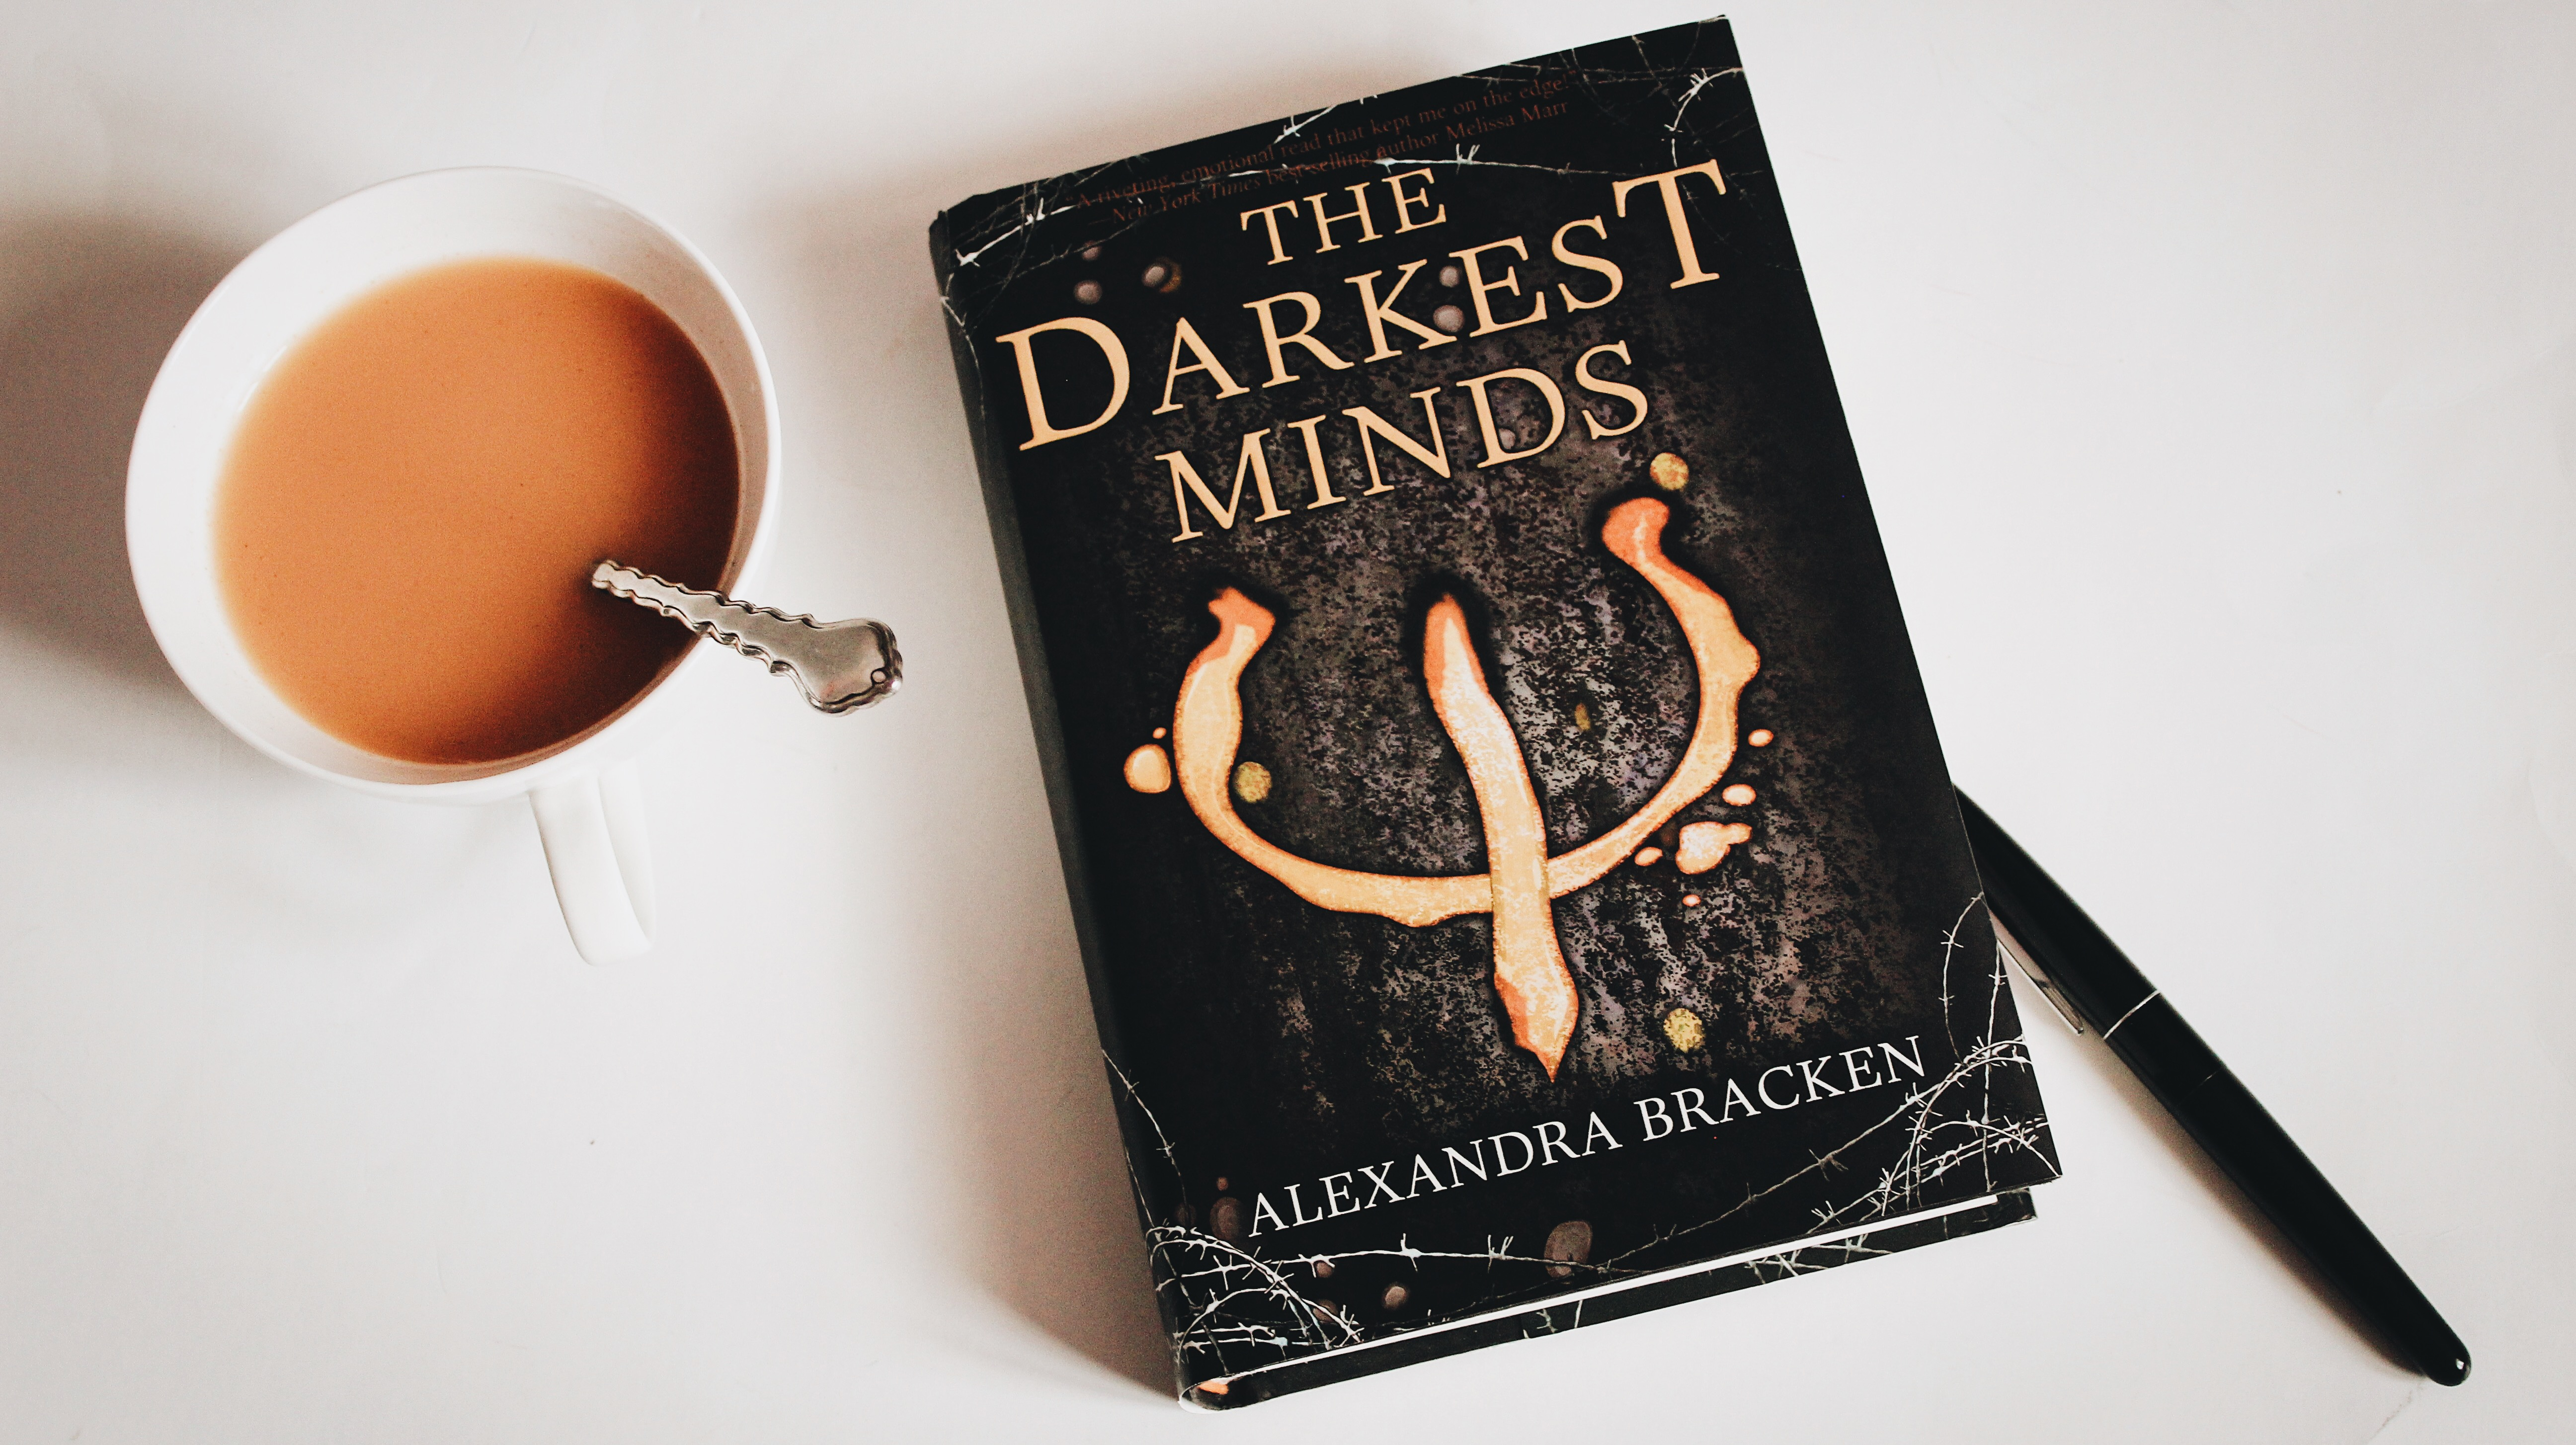 Guest Post: Scenes to Watch for in The Darkest Minds Movie